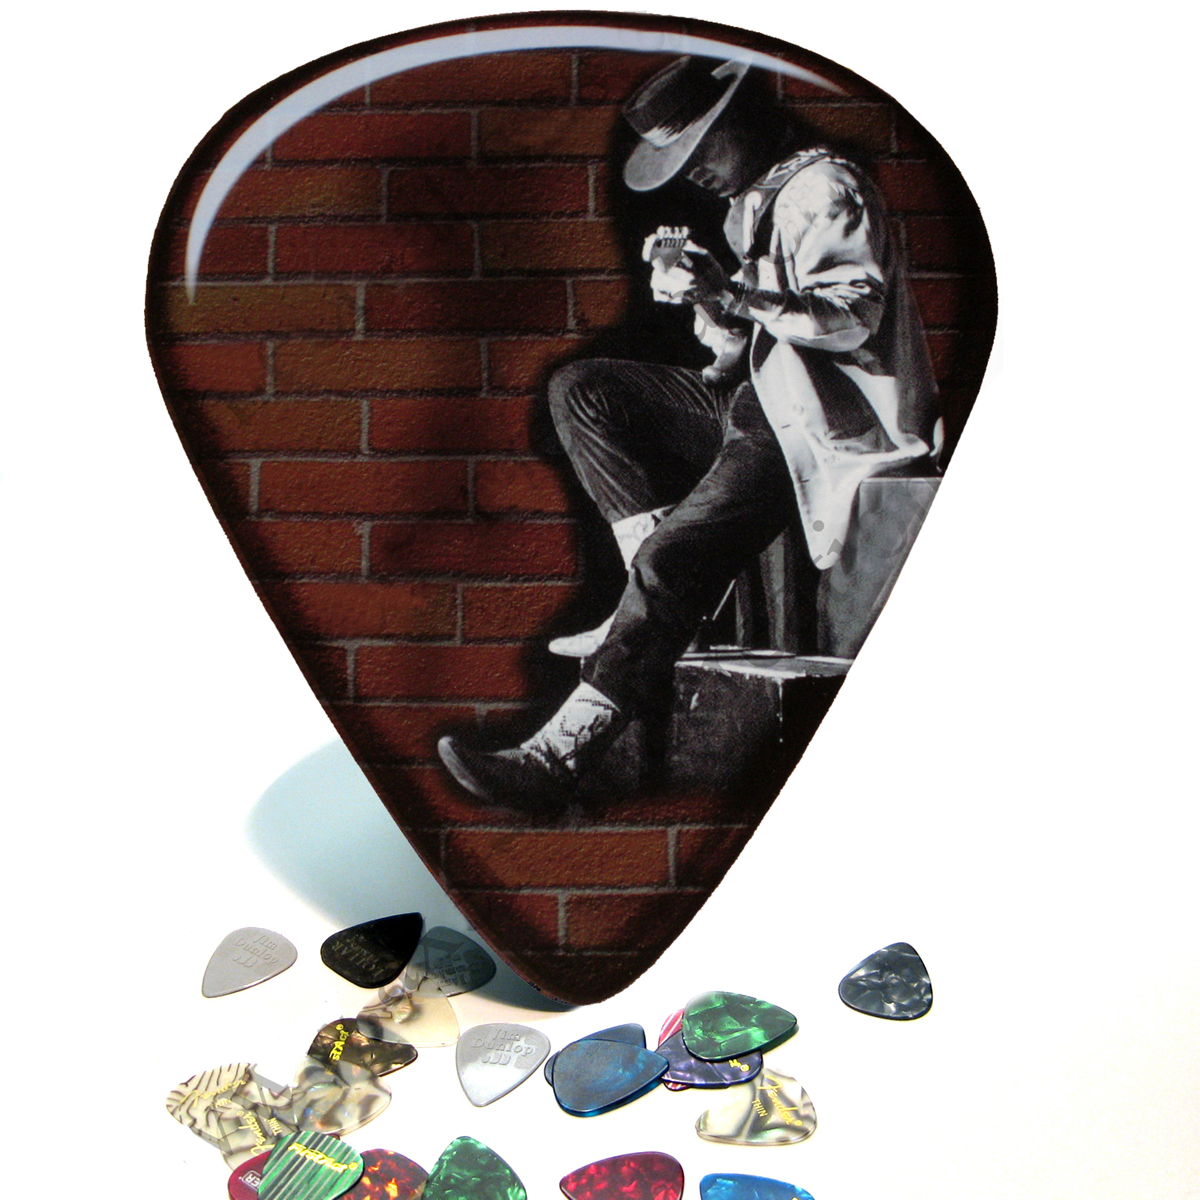 SRV Giant Guitar Pick Wall Art - 1043